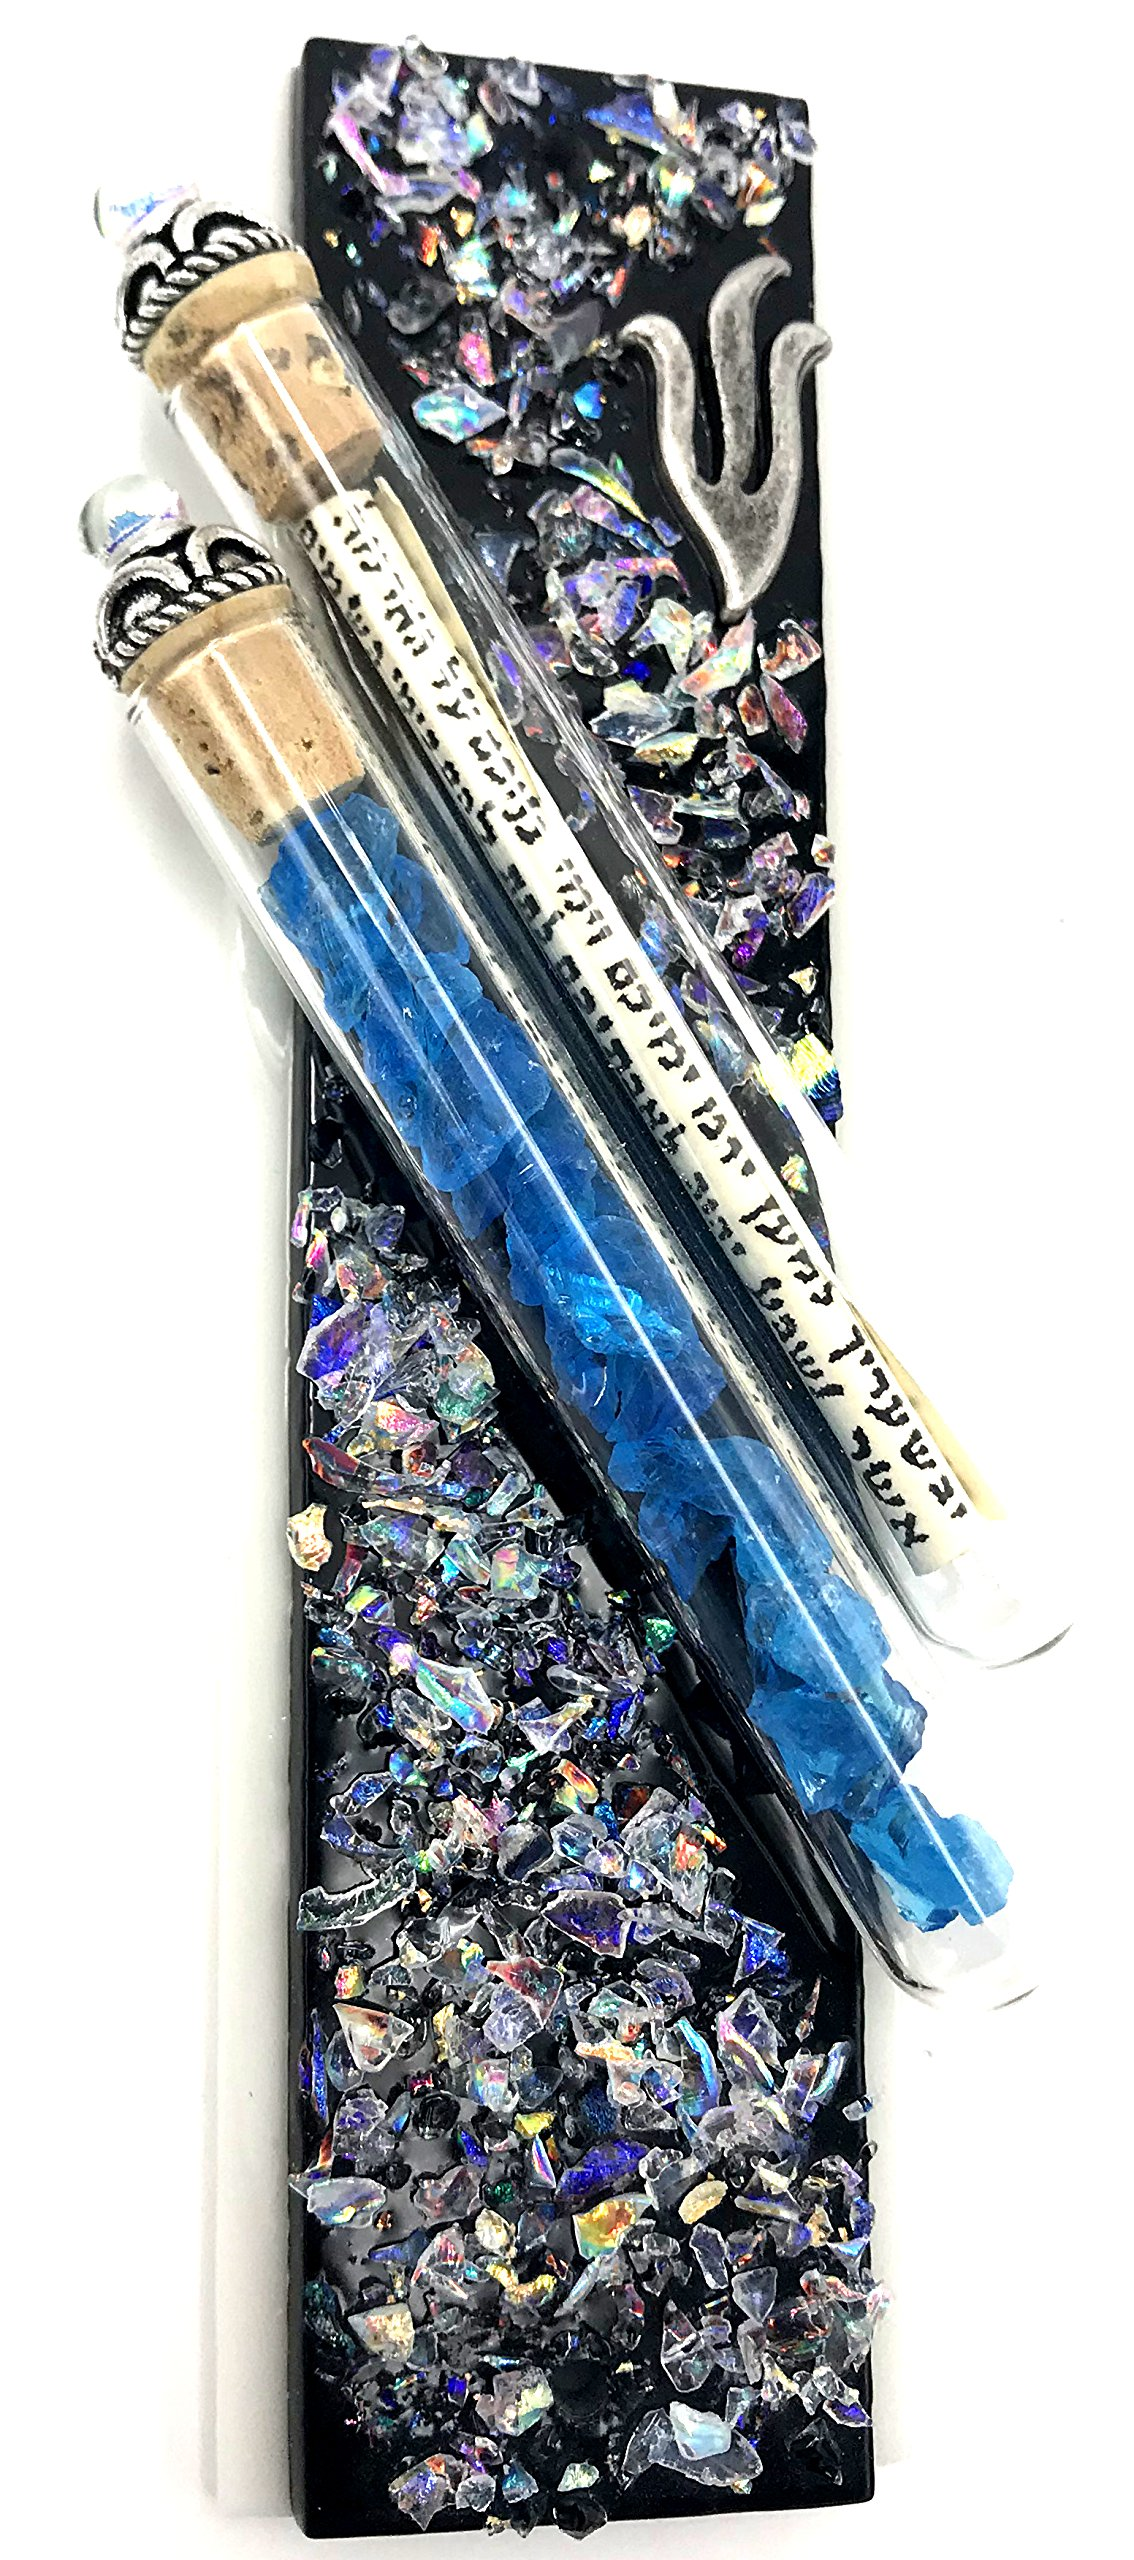 Tamara Baskin Art Glass Wedding Keepsakes Mezuzah, Gift Box and Non-Kosher Scroll Included Hand Made in the USA (Black)